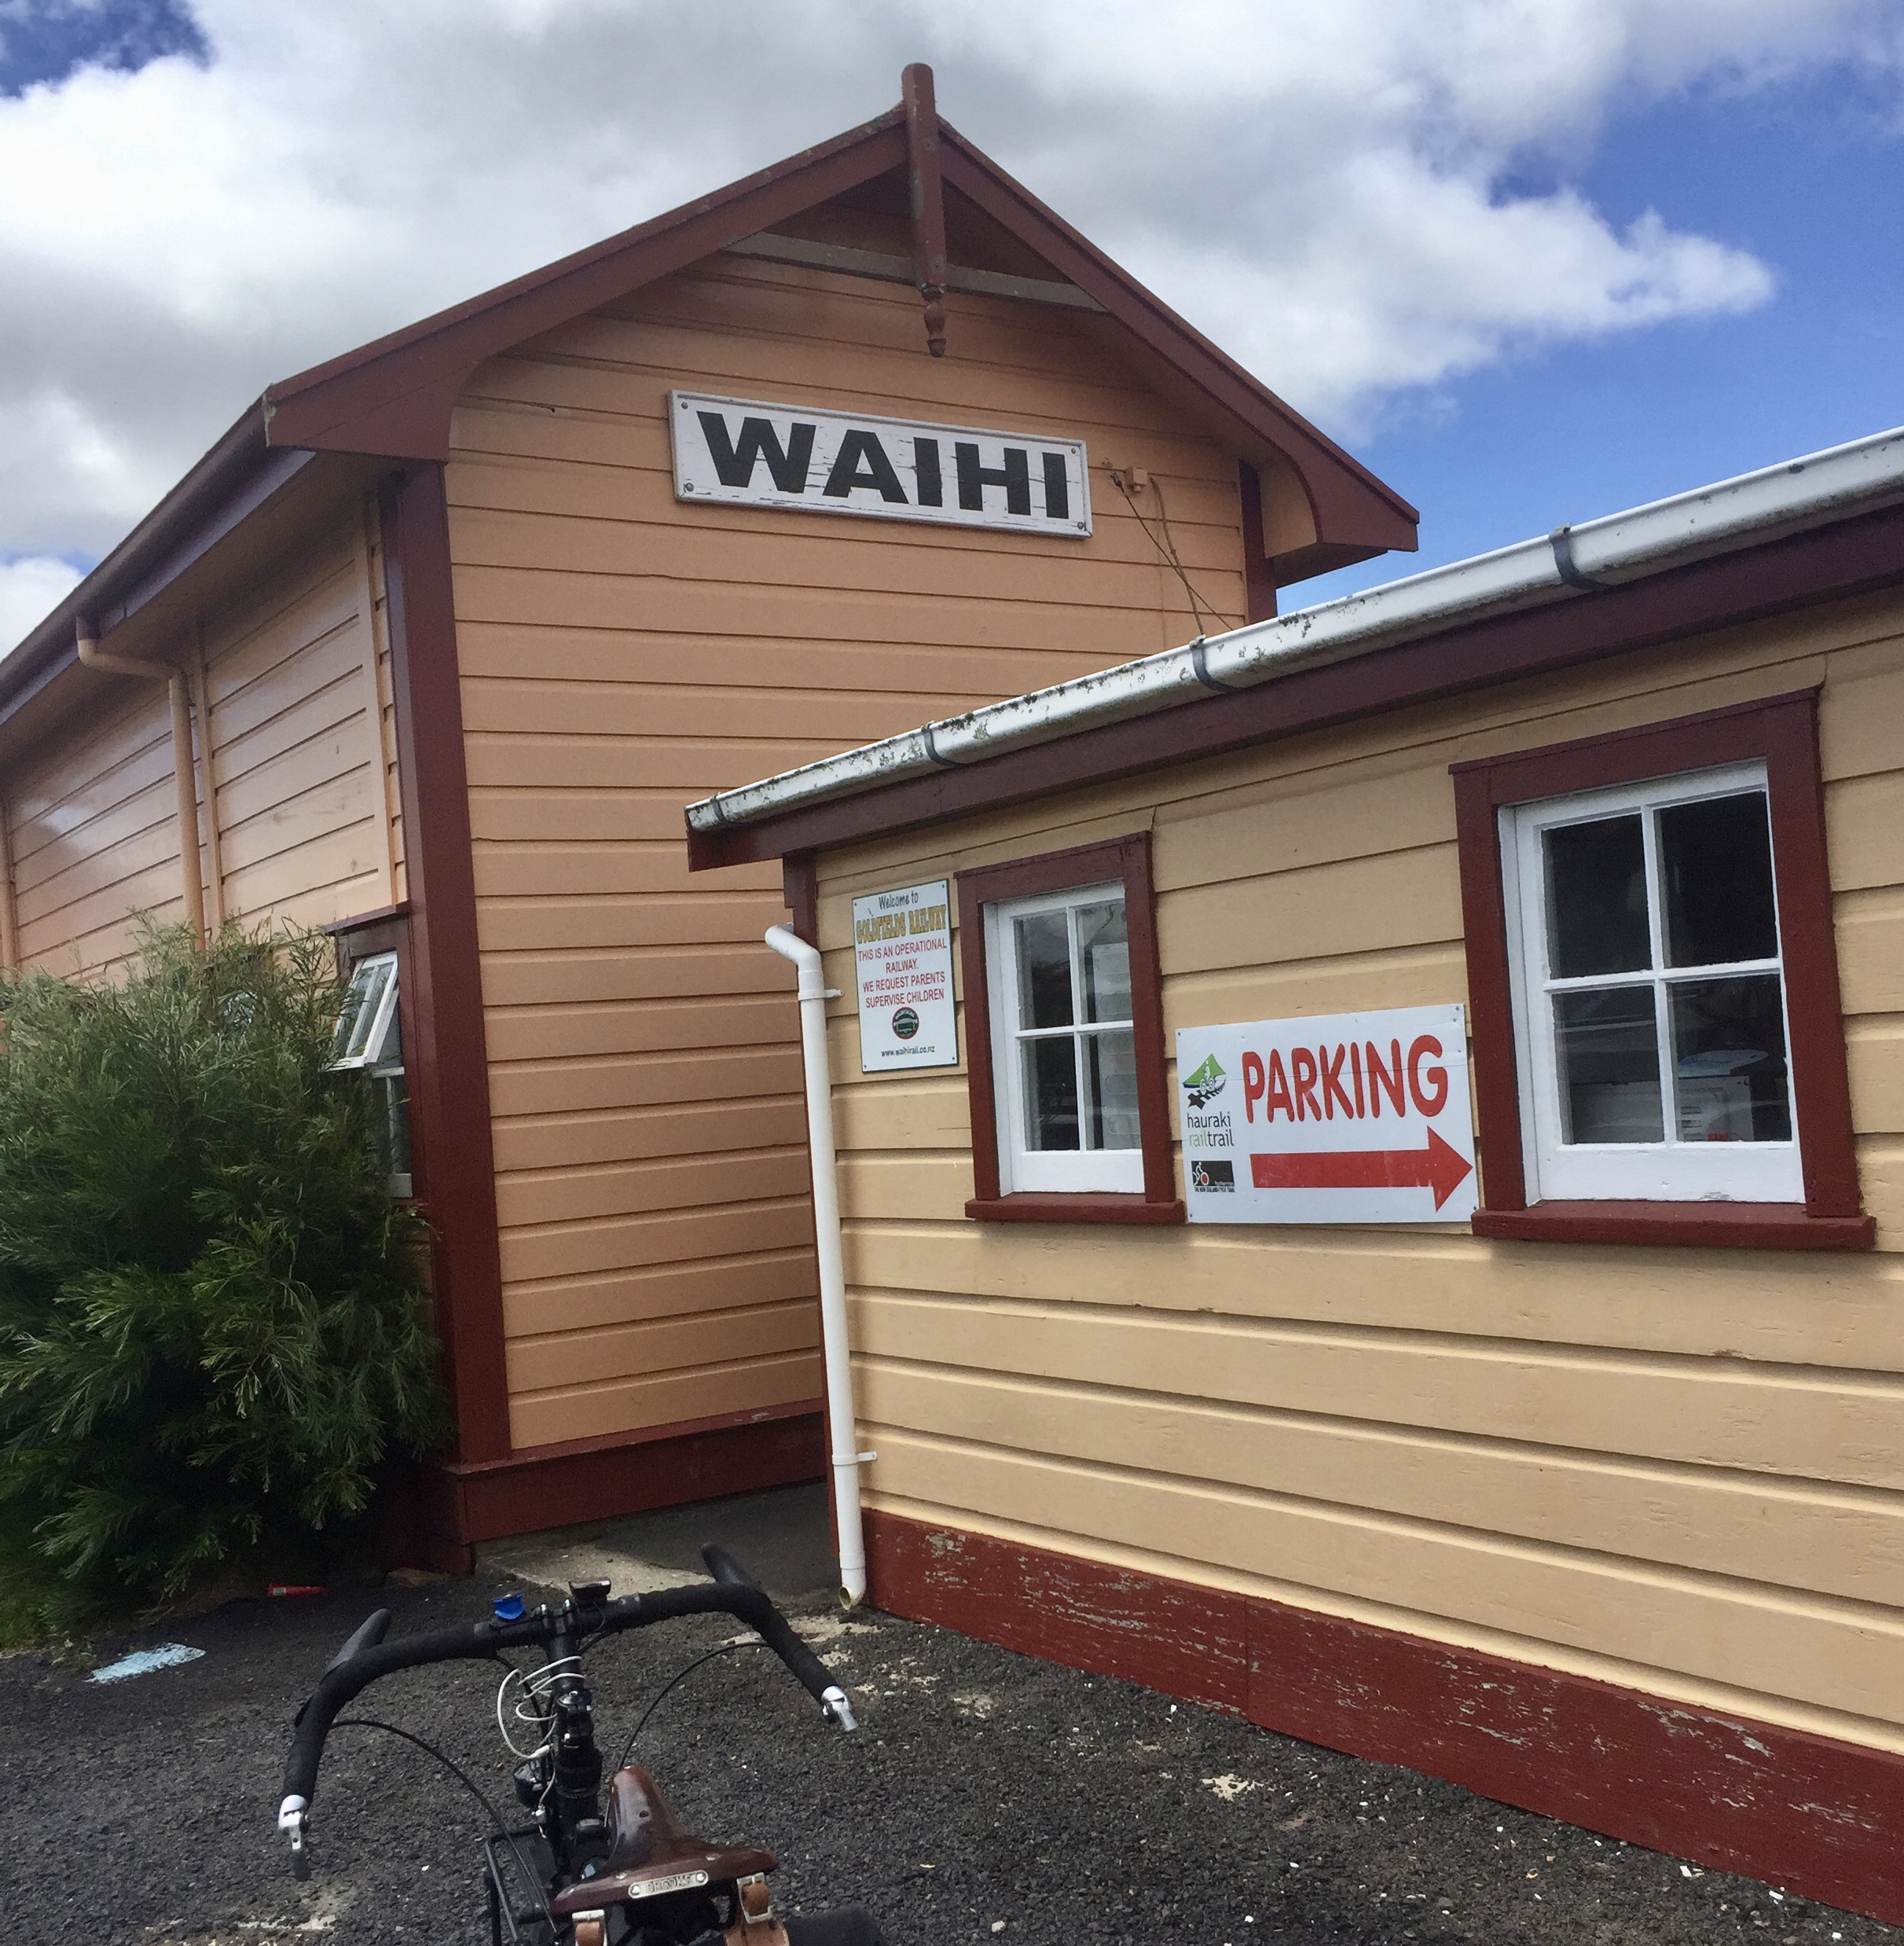 Waihi train station